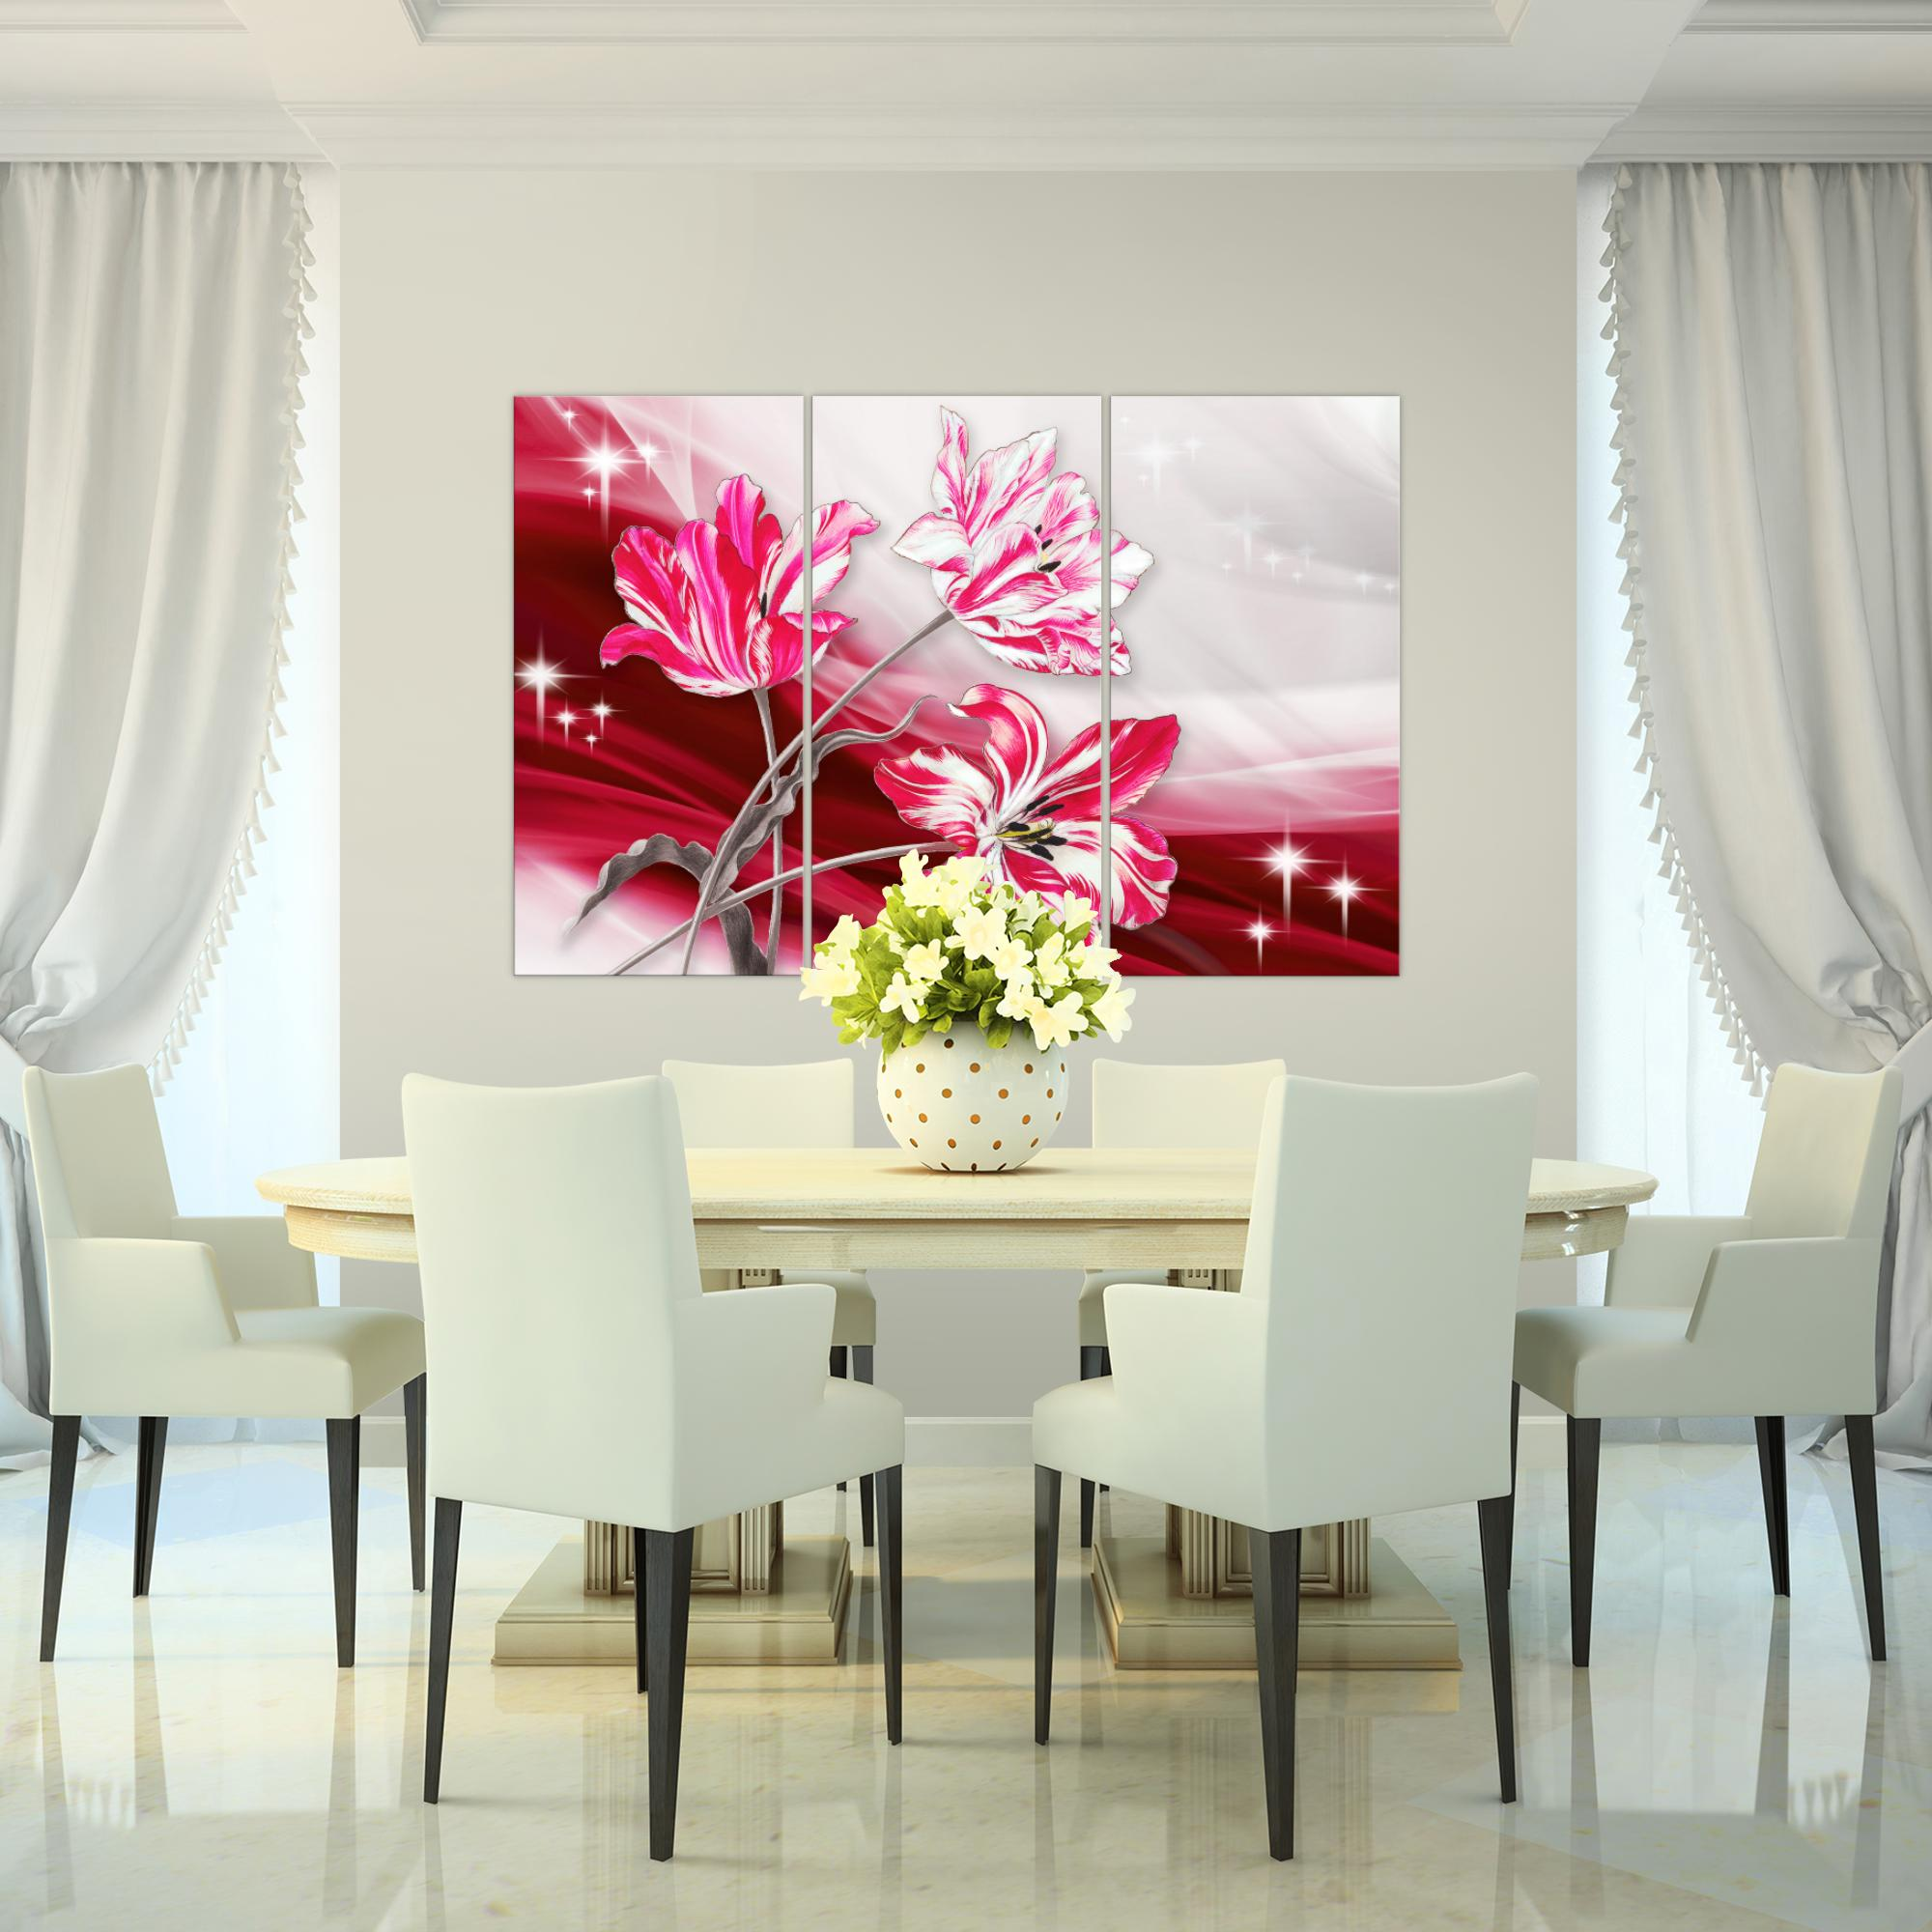 blumen tulpen bild kunstdruck auf vlies leinwand xxl dekoration 209231p. Black Bedroom Furniture Sets. Home Design Ideas